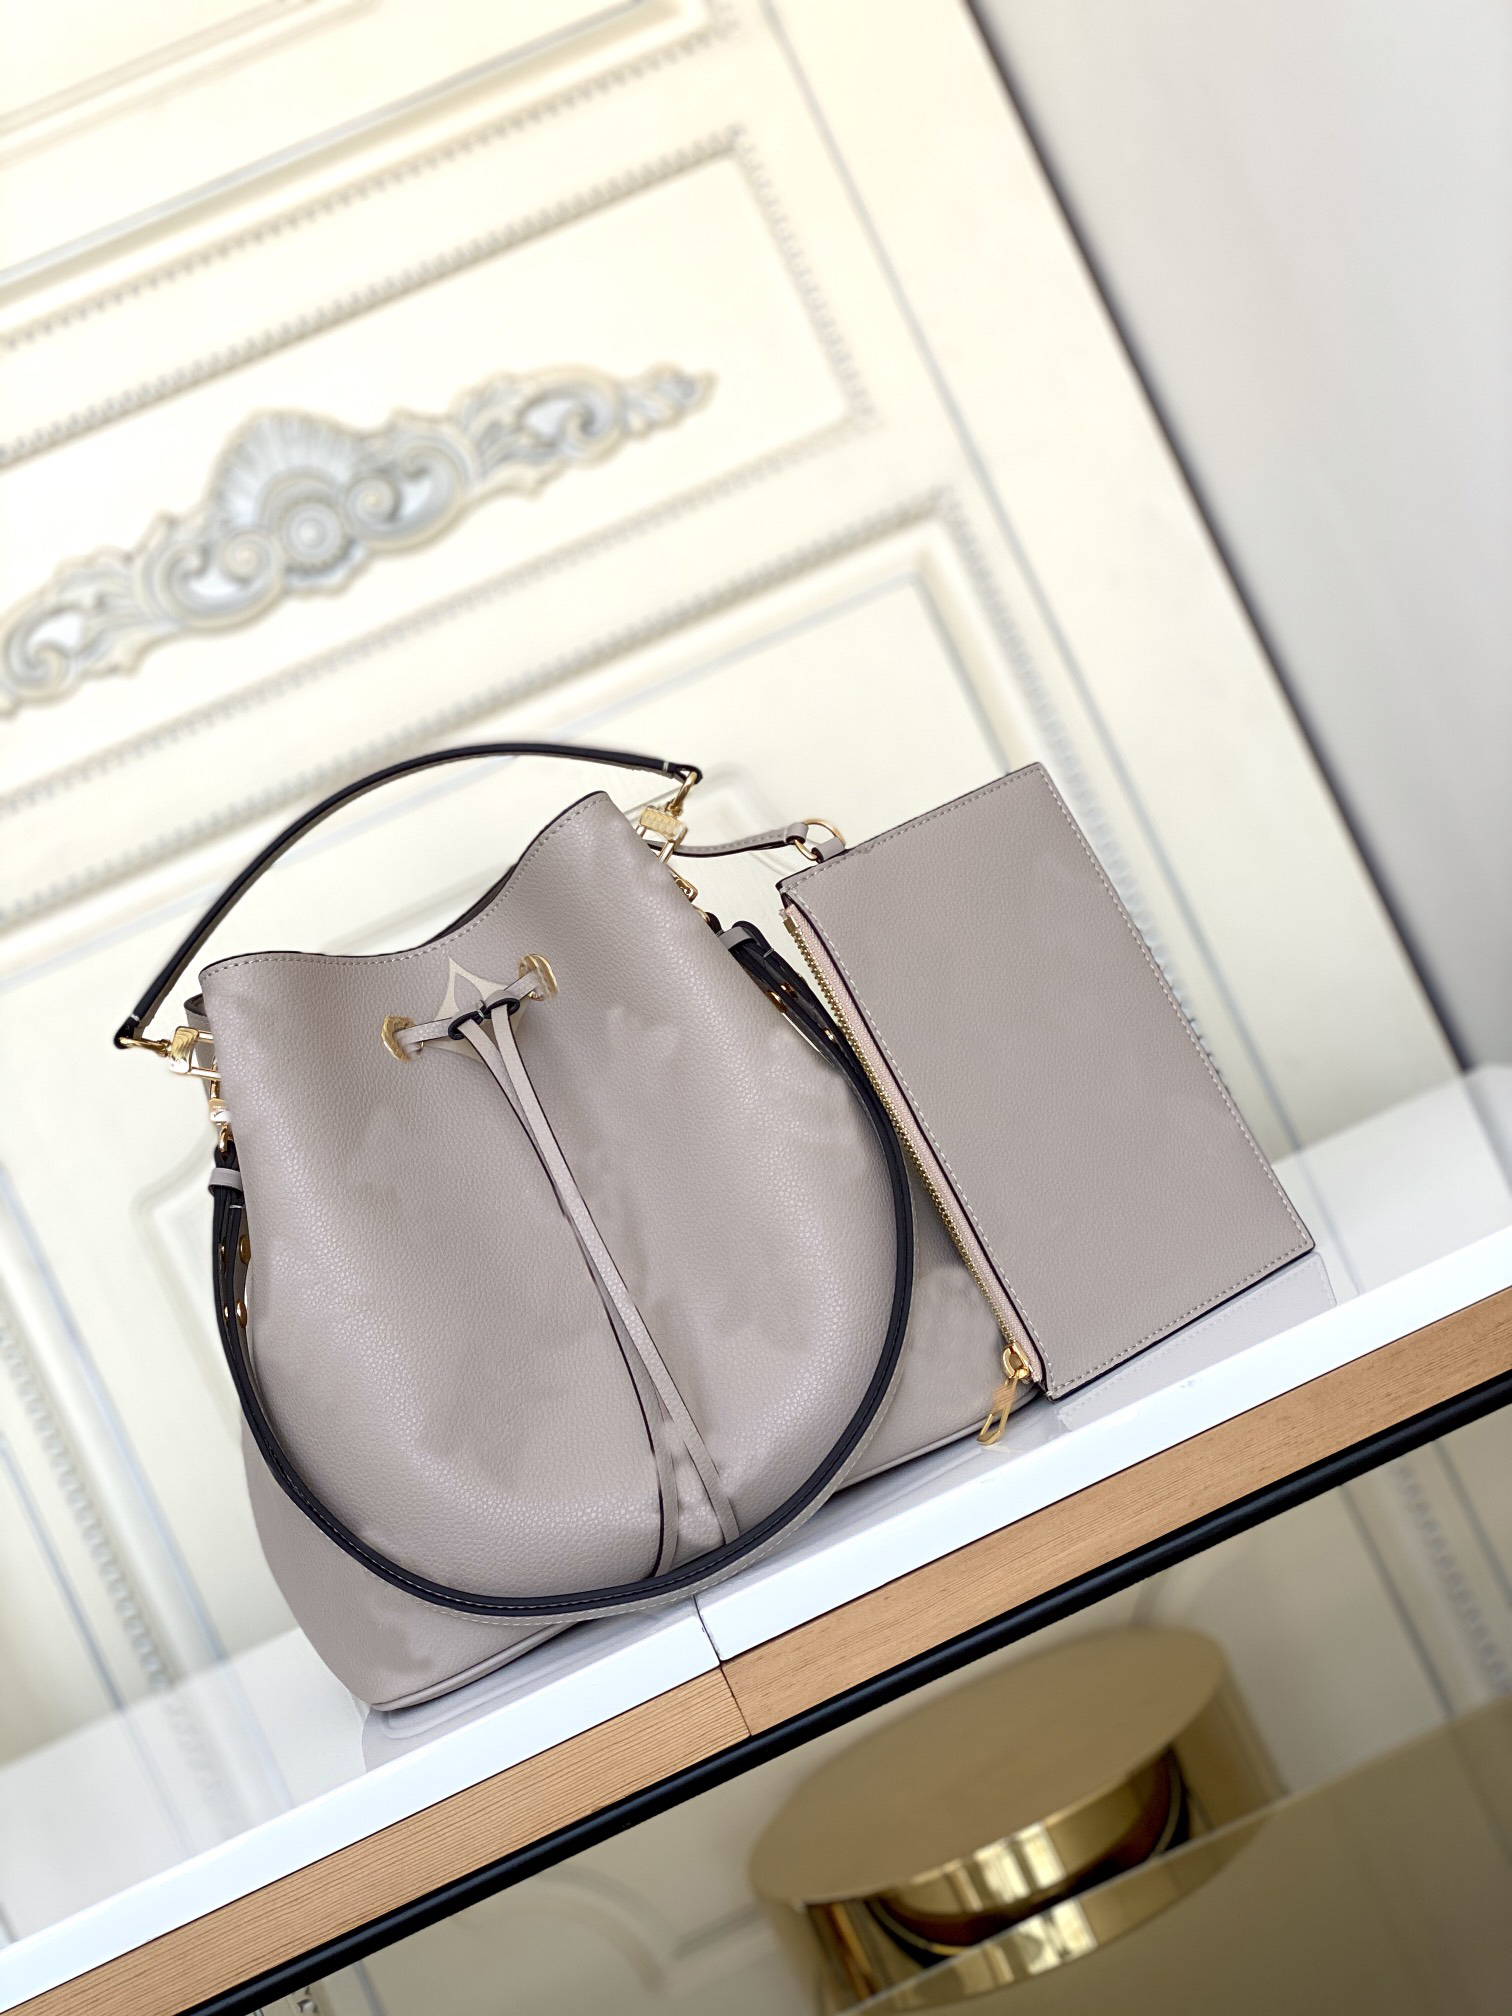 Bag 2021 High Quality All-match cwallets designer Woman Fashion Evening Bags designers Clutch Ladies purses Luxury Clemence long wallet Card Holder Purse 45555